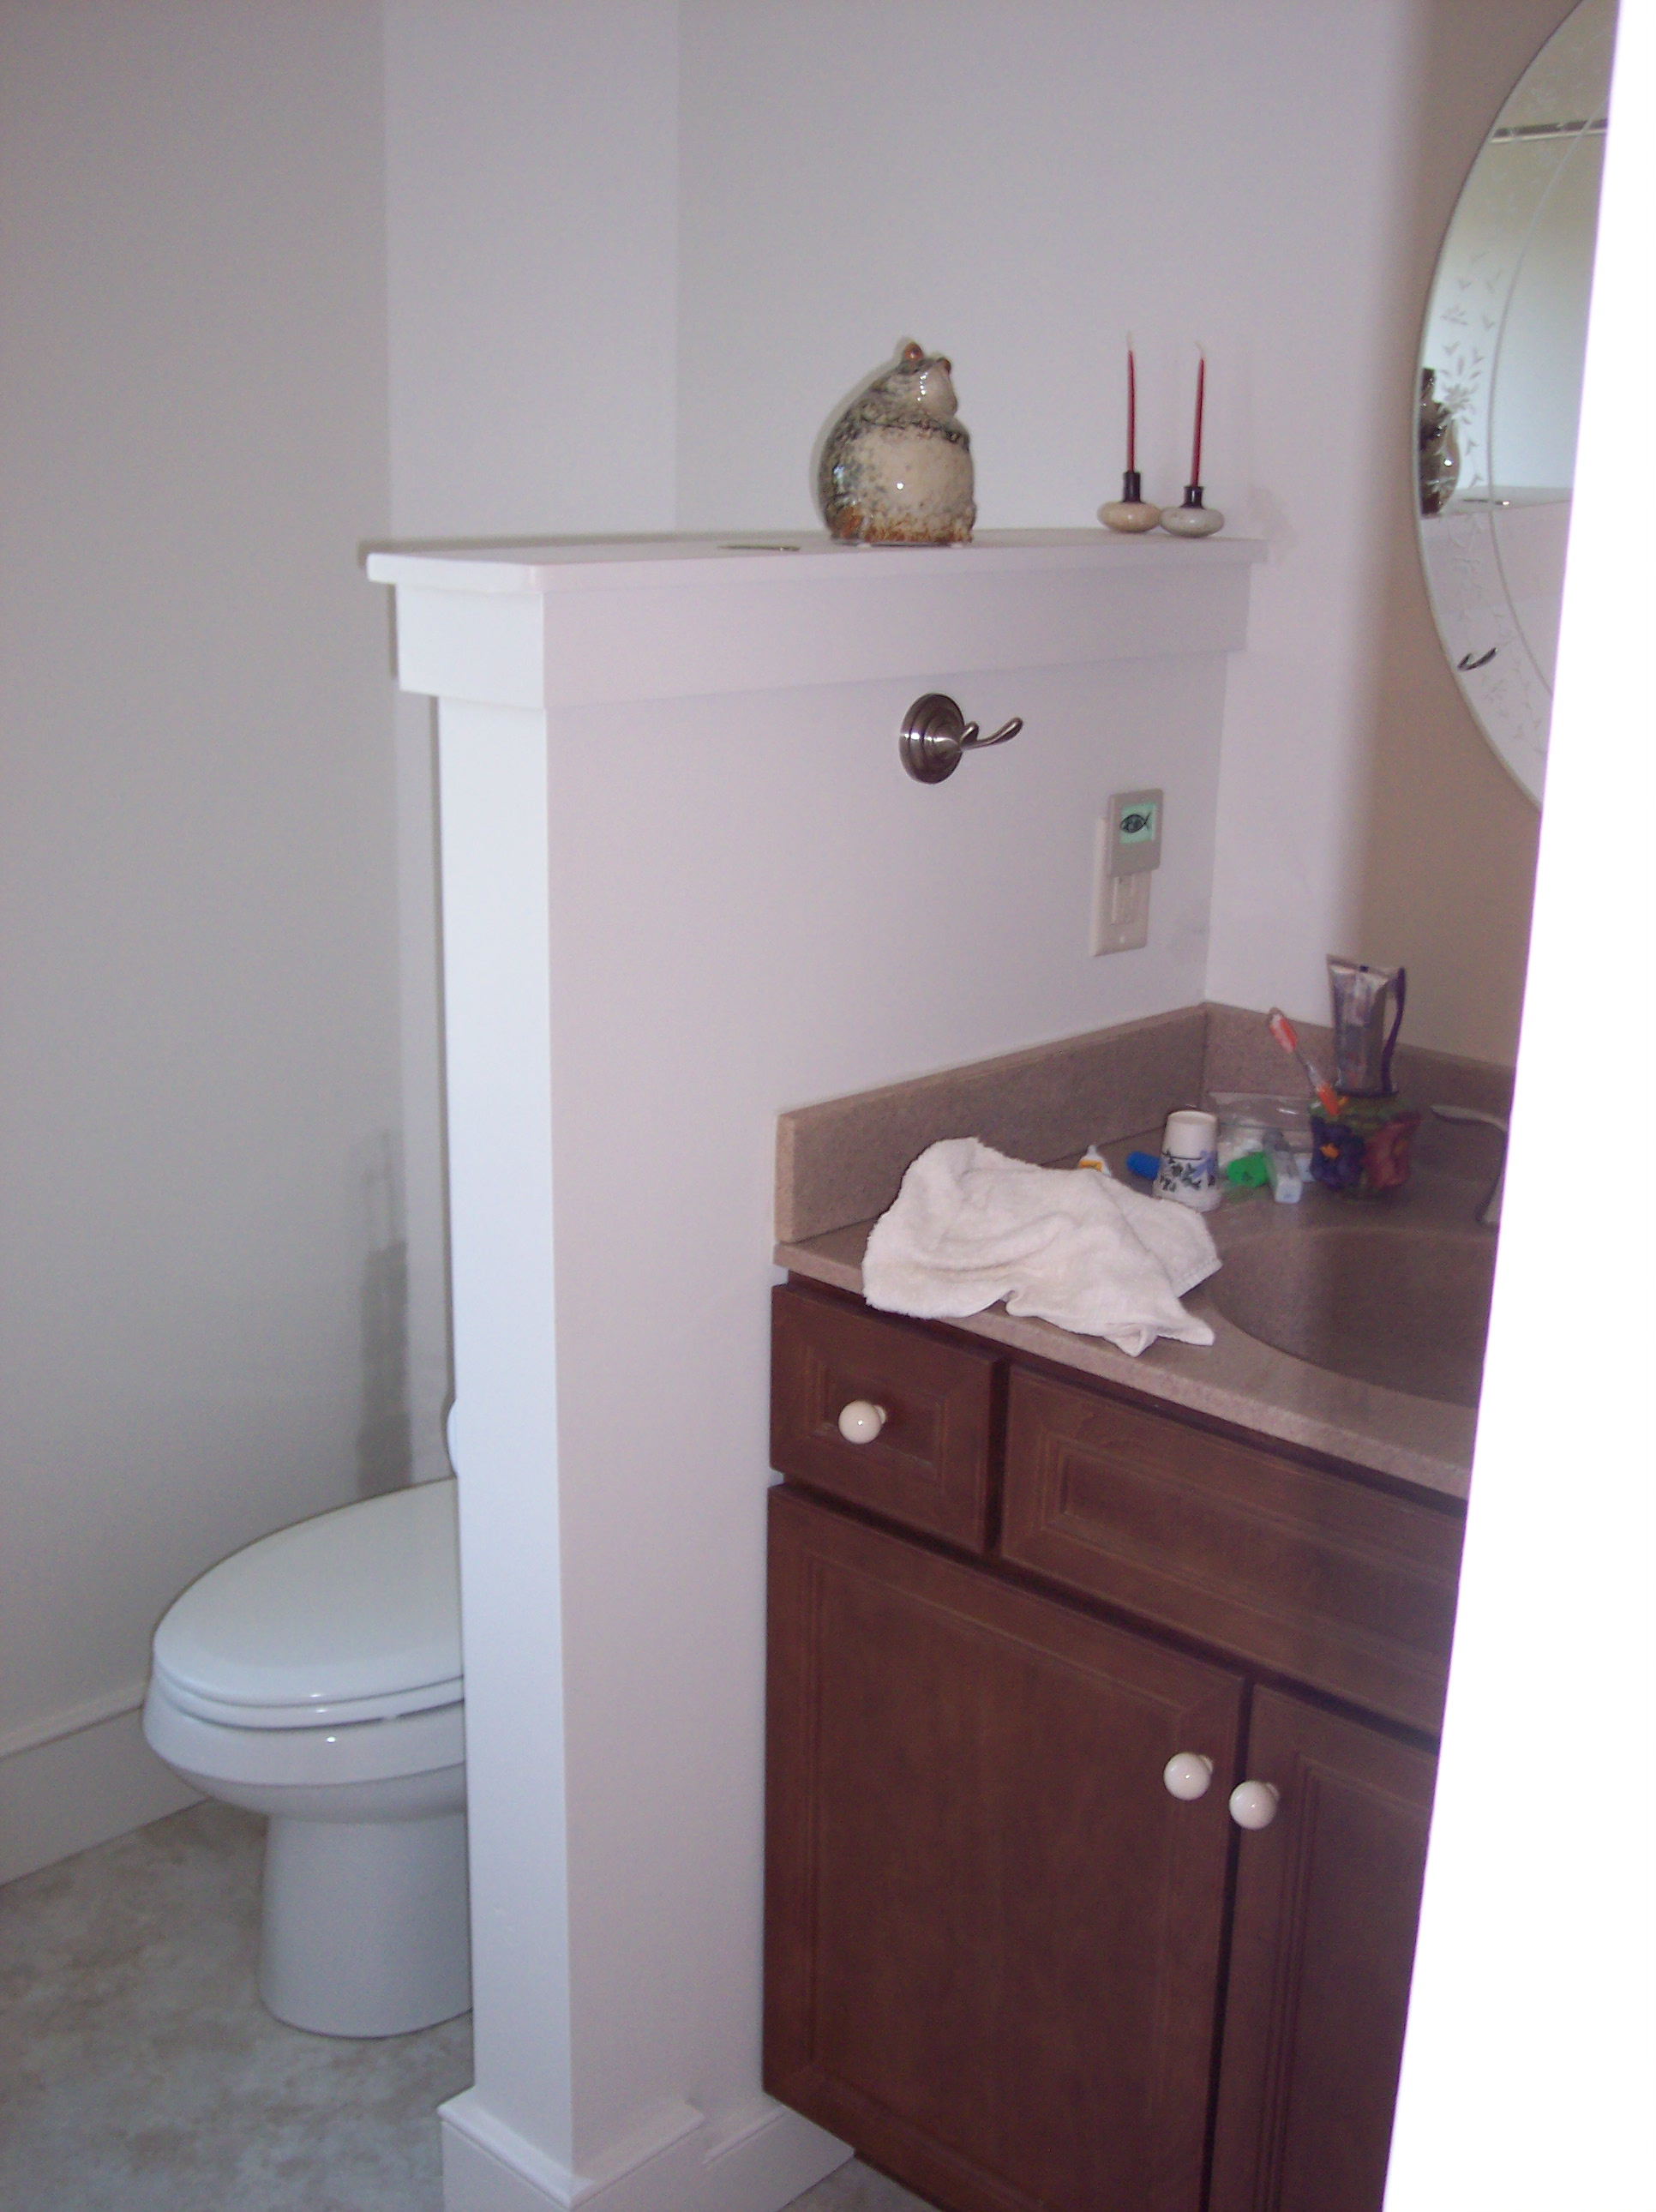 Remodeling ideas for small bathrooms lancaster pa for Small bathroom remodel pictures